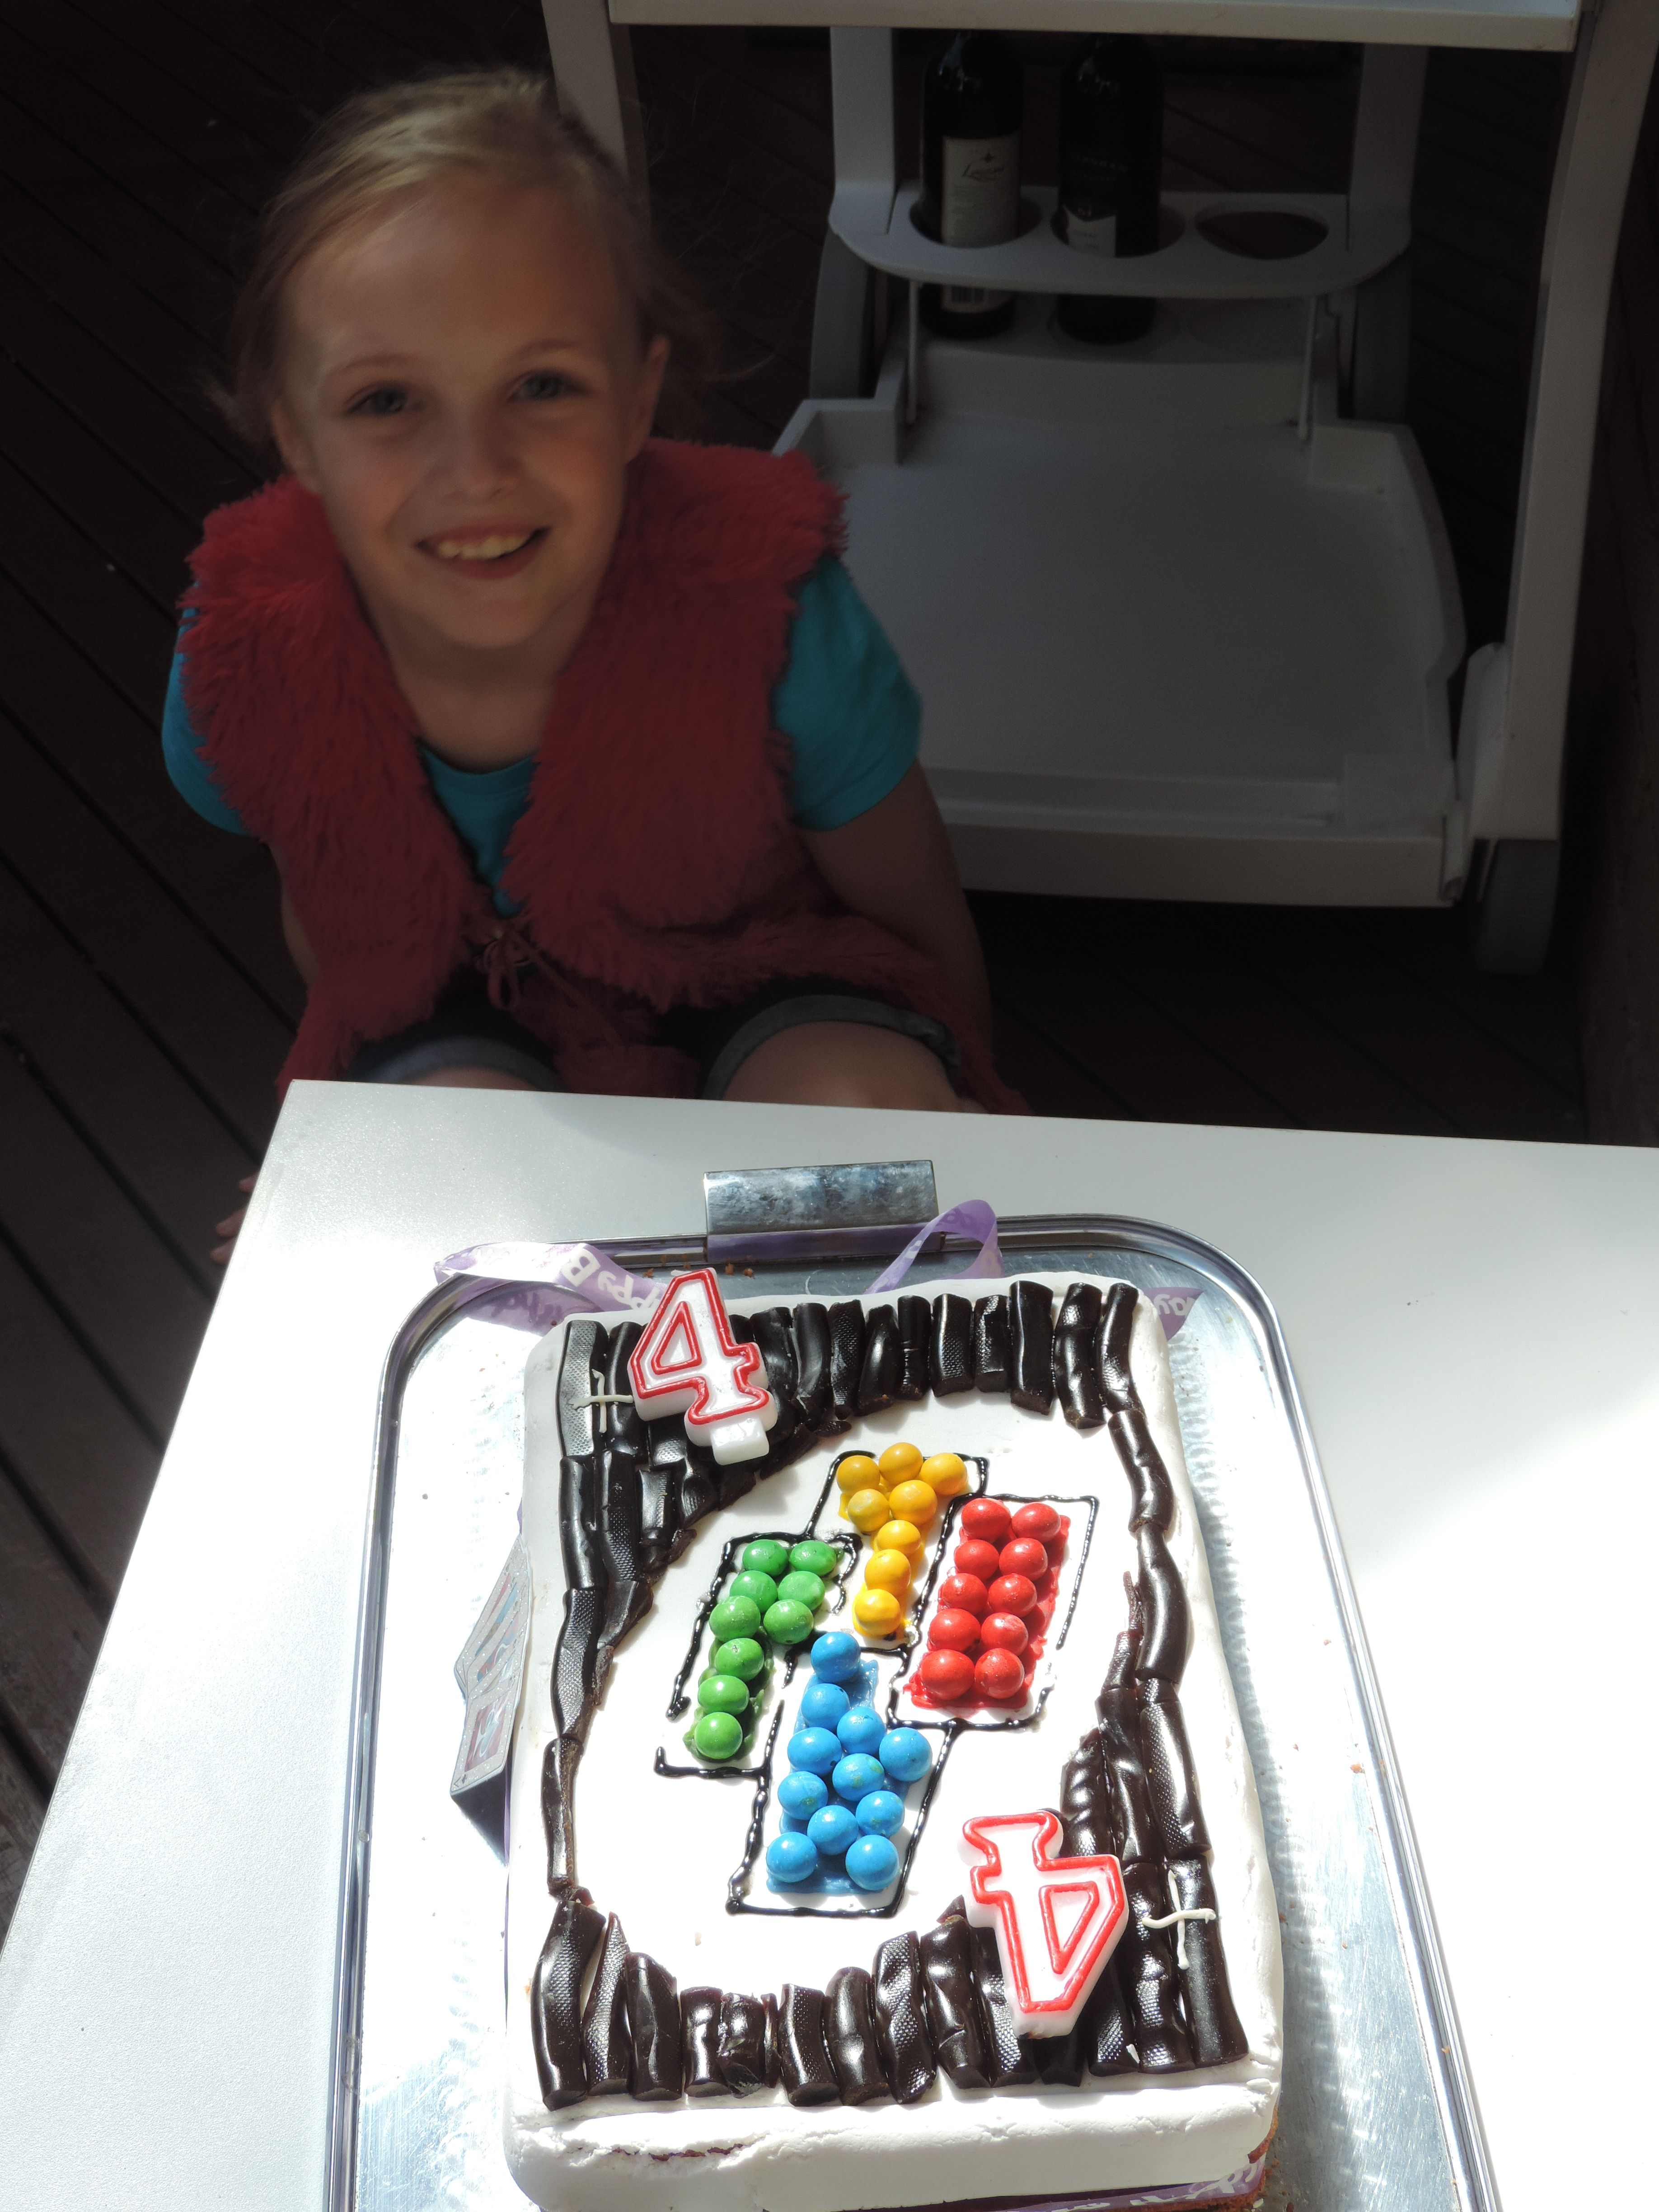 Cake Design Idea Uno Card Game The Draw 4 Card My Daughter S Favourite Game Put Two 4 Numeral Candles In Uno Card Game Kids Birthday Cake Designs